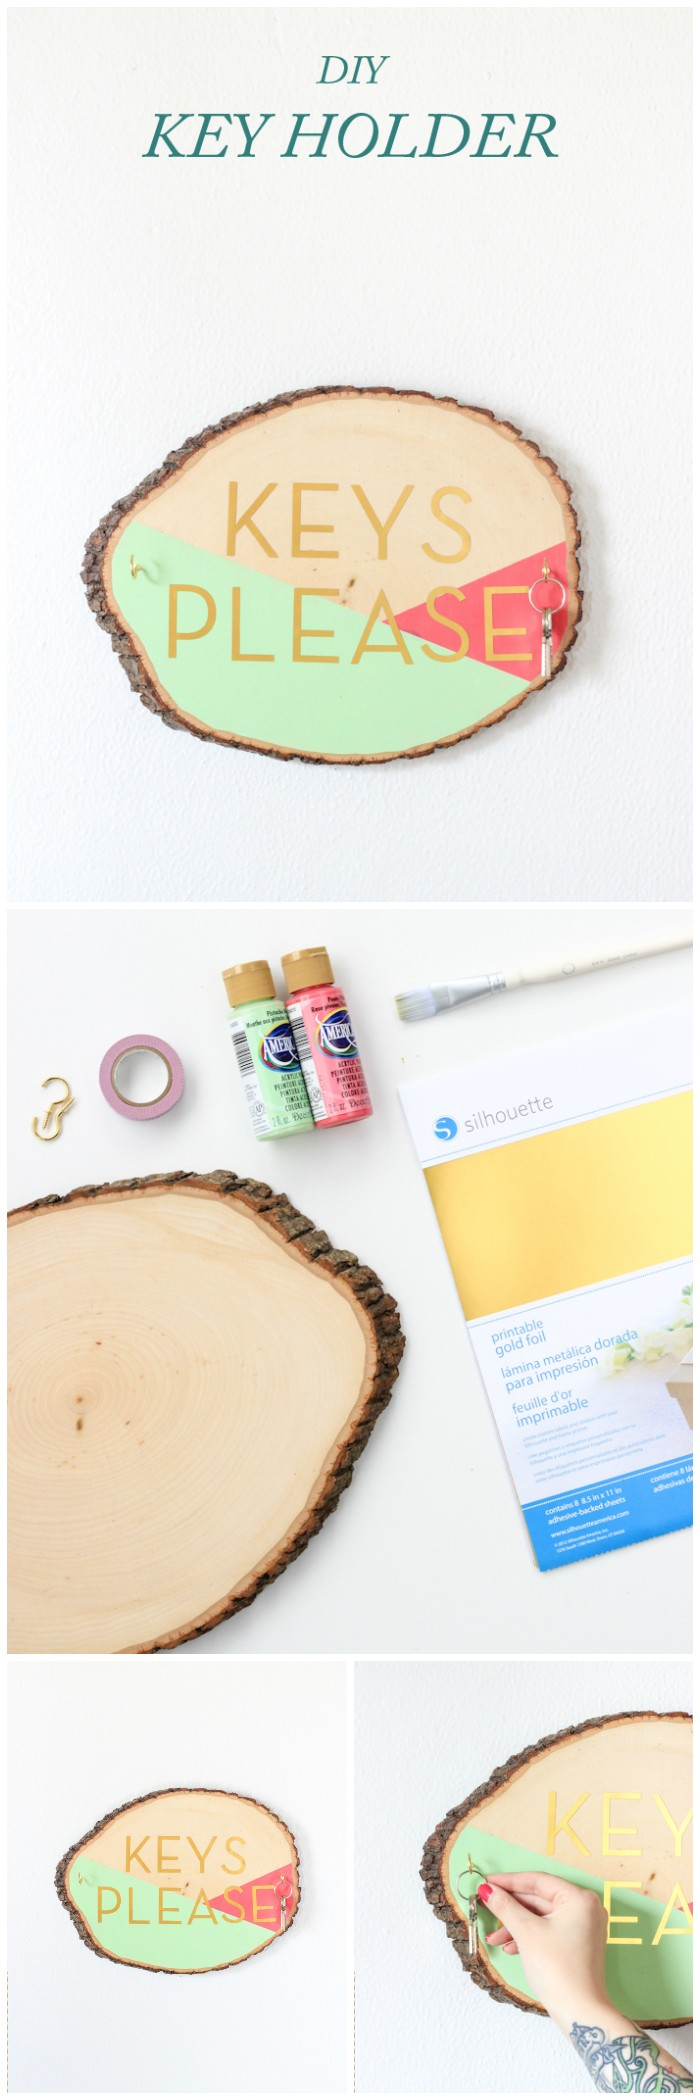 DIY Wooden Slab Key Holder